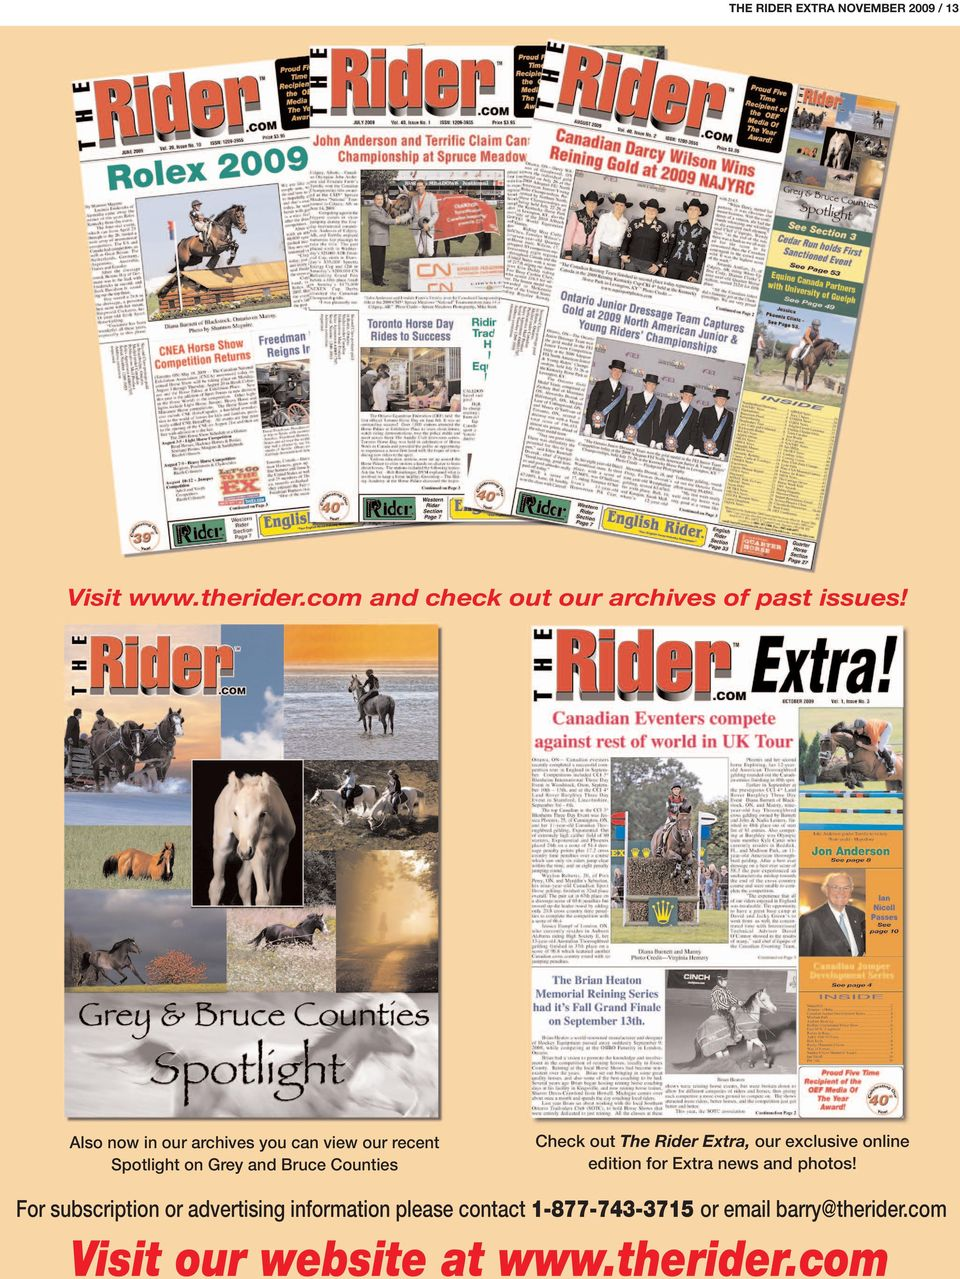 Rider Extra, our exclusive online edition for Extra news and photos!